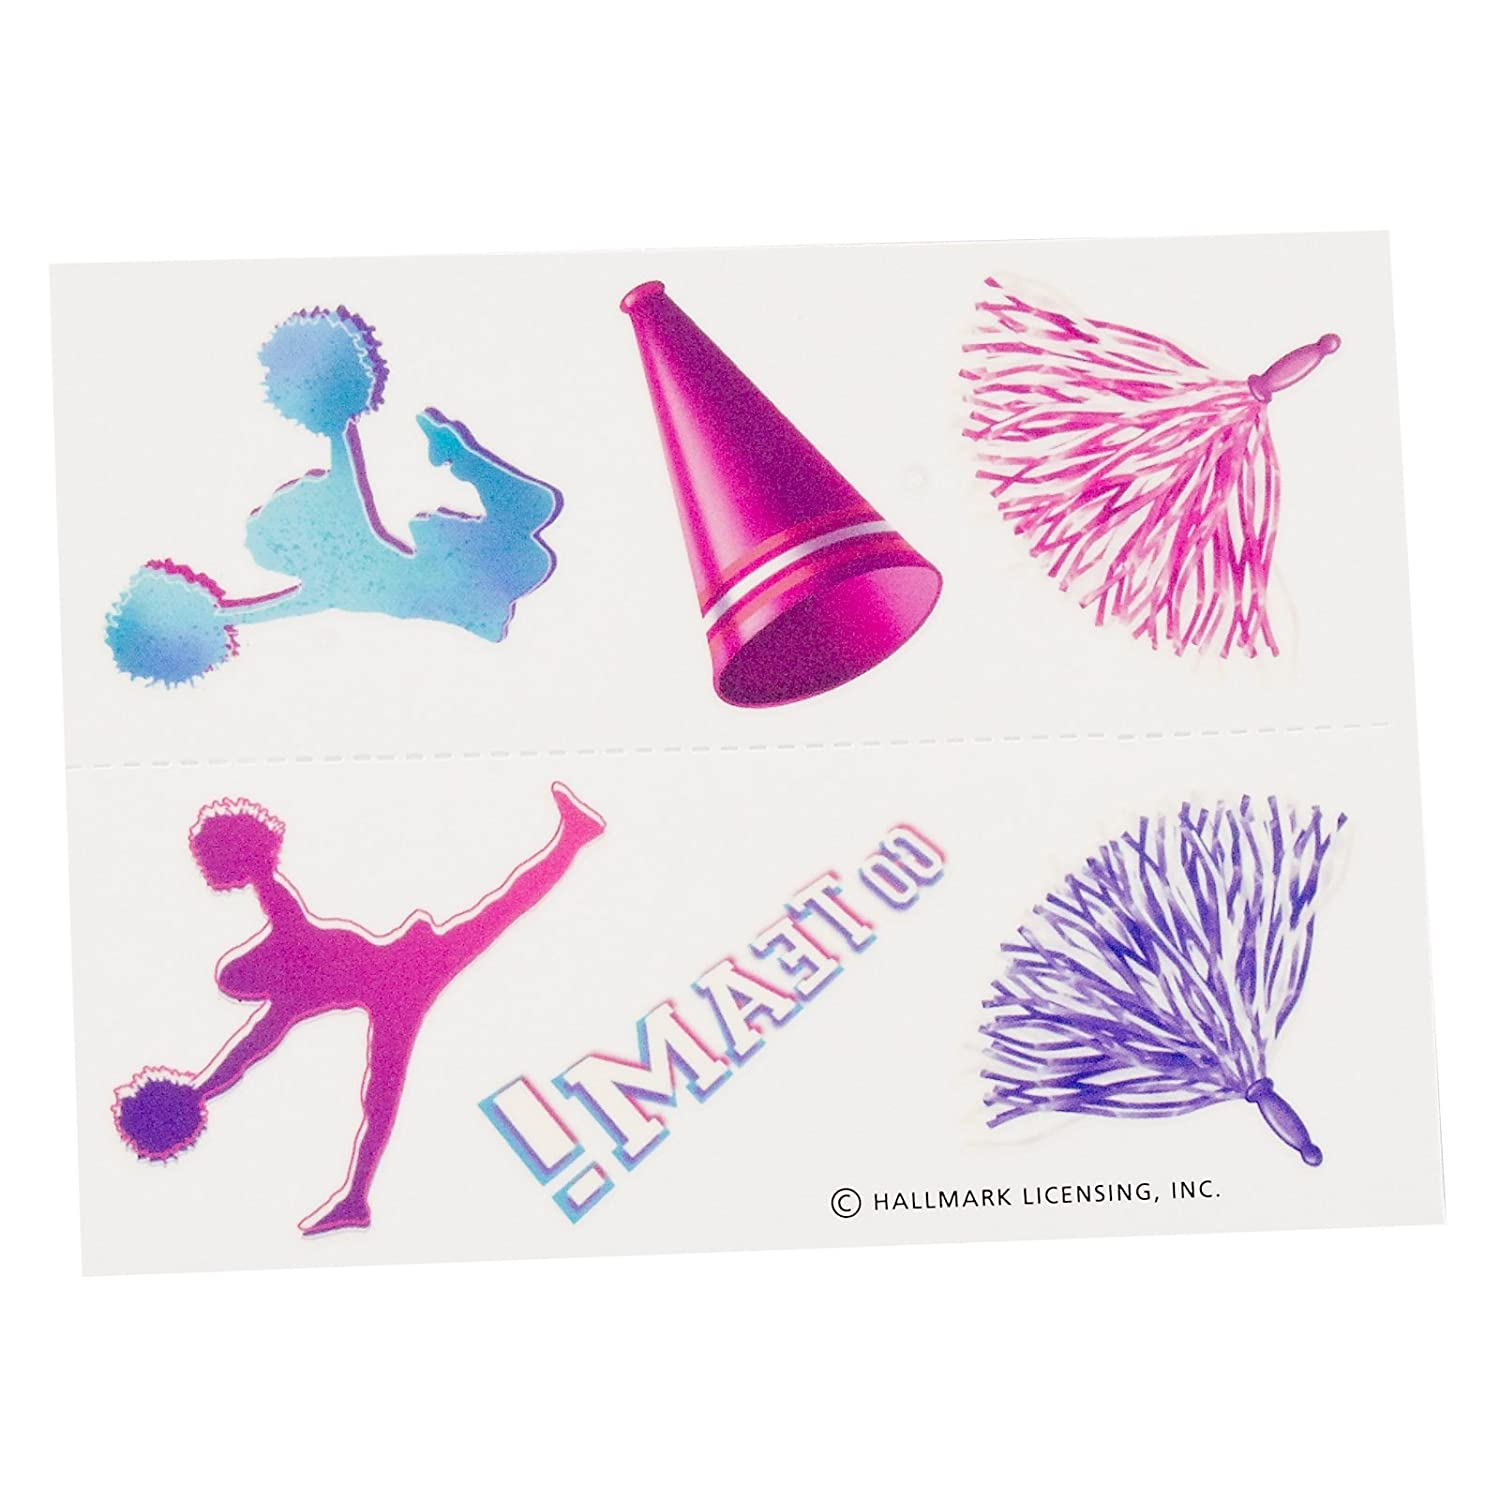 Hallmark Something To Cheer About Tattoos 2 Sheets